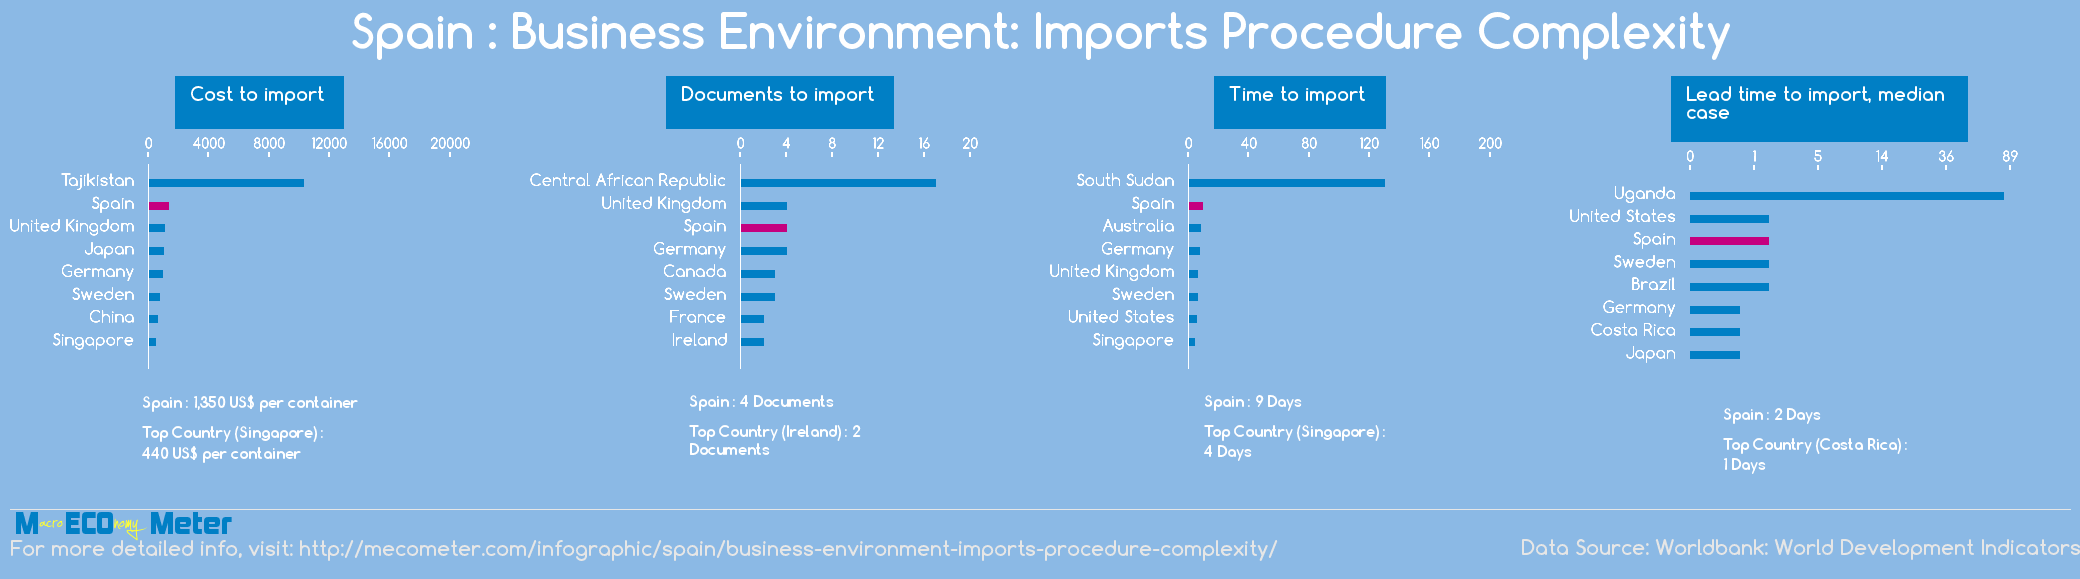 Spain : Business Environment: Imports Procedure Complexity